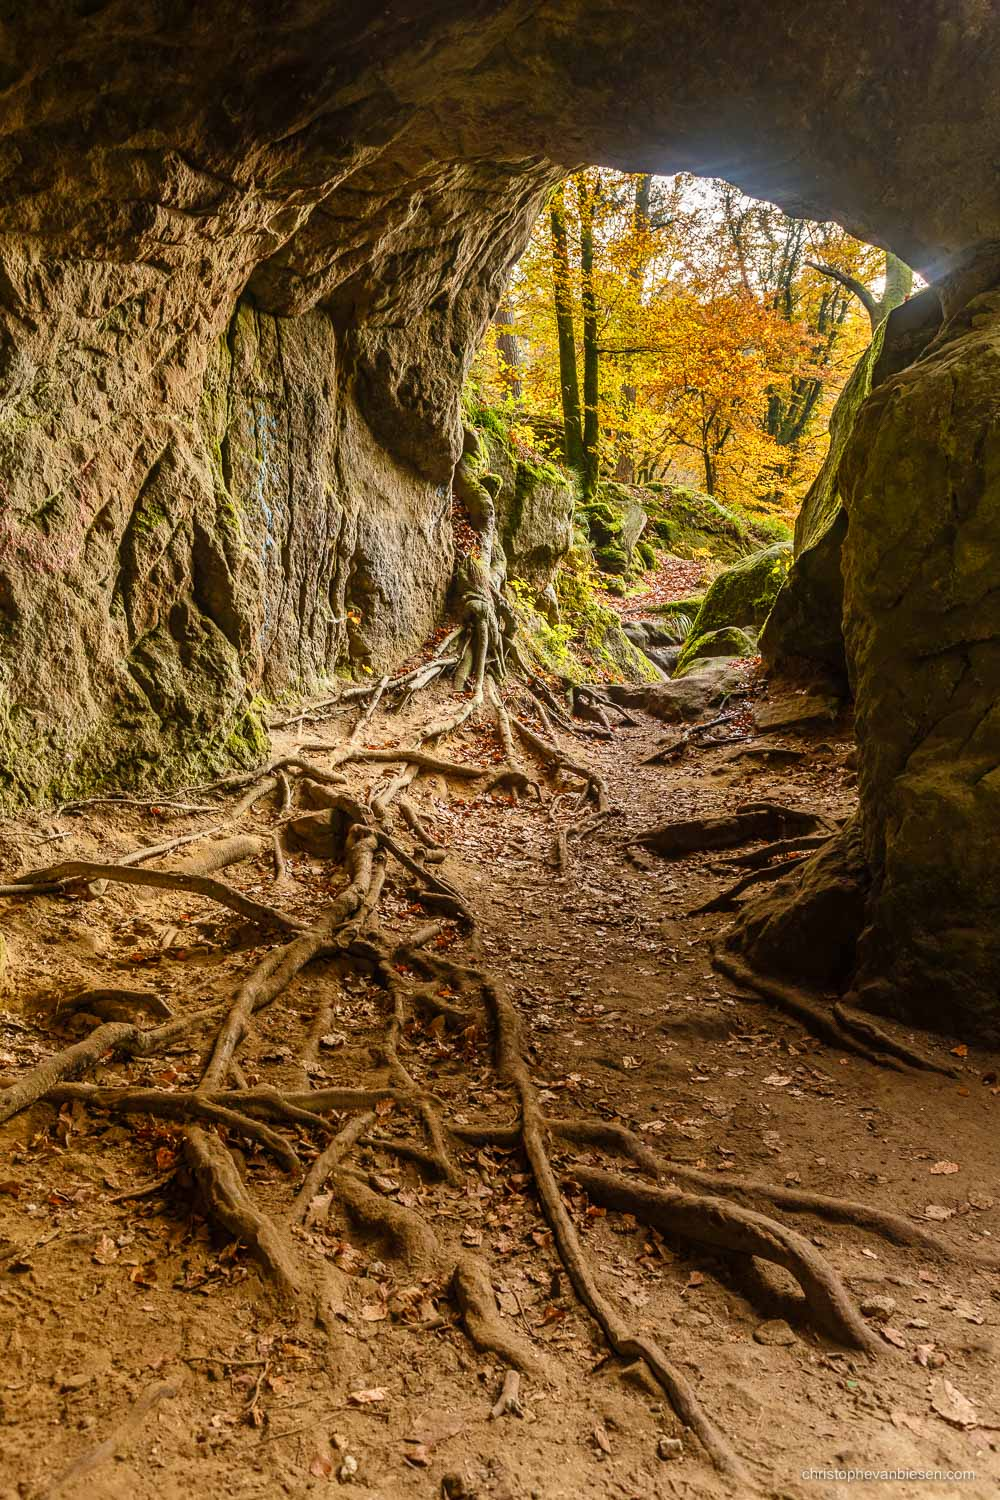 Autumn in Luxembourg - Autumn in Luxembourg's forests in the Mullerthal region near Berdorf - Deep Roots